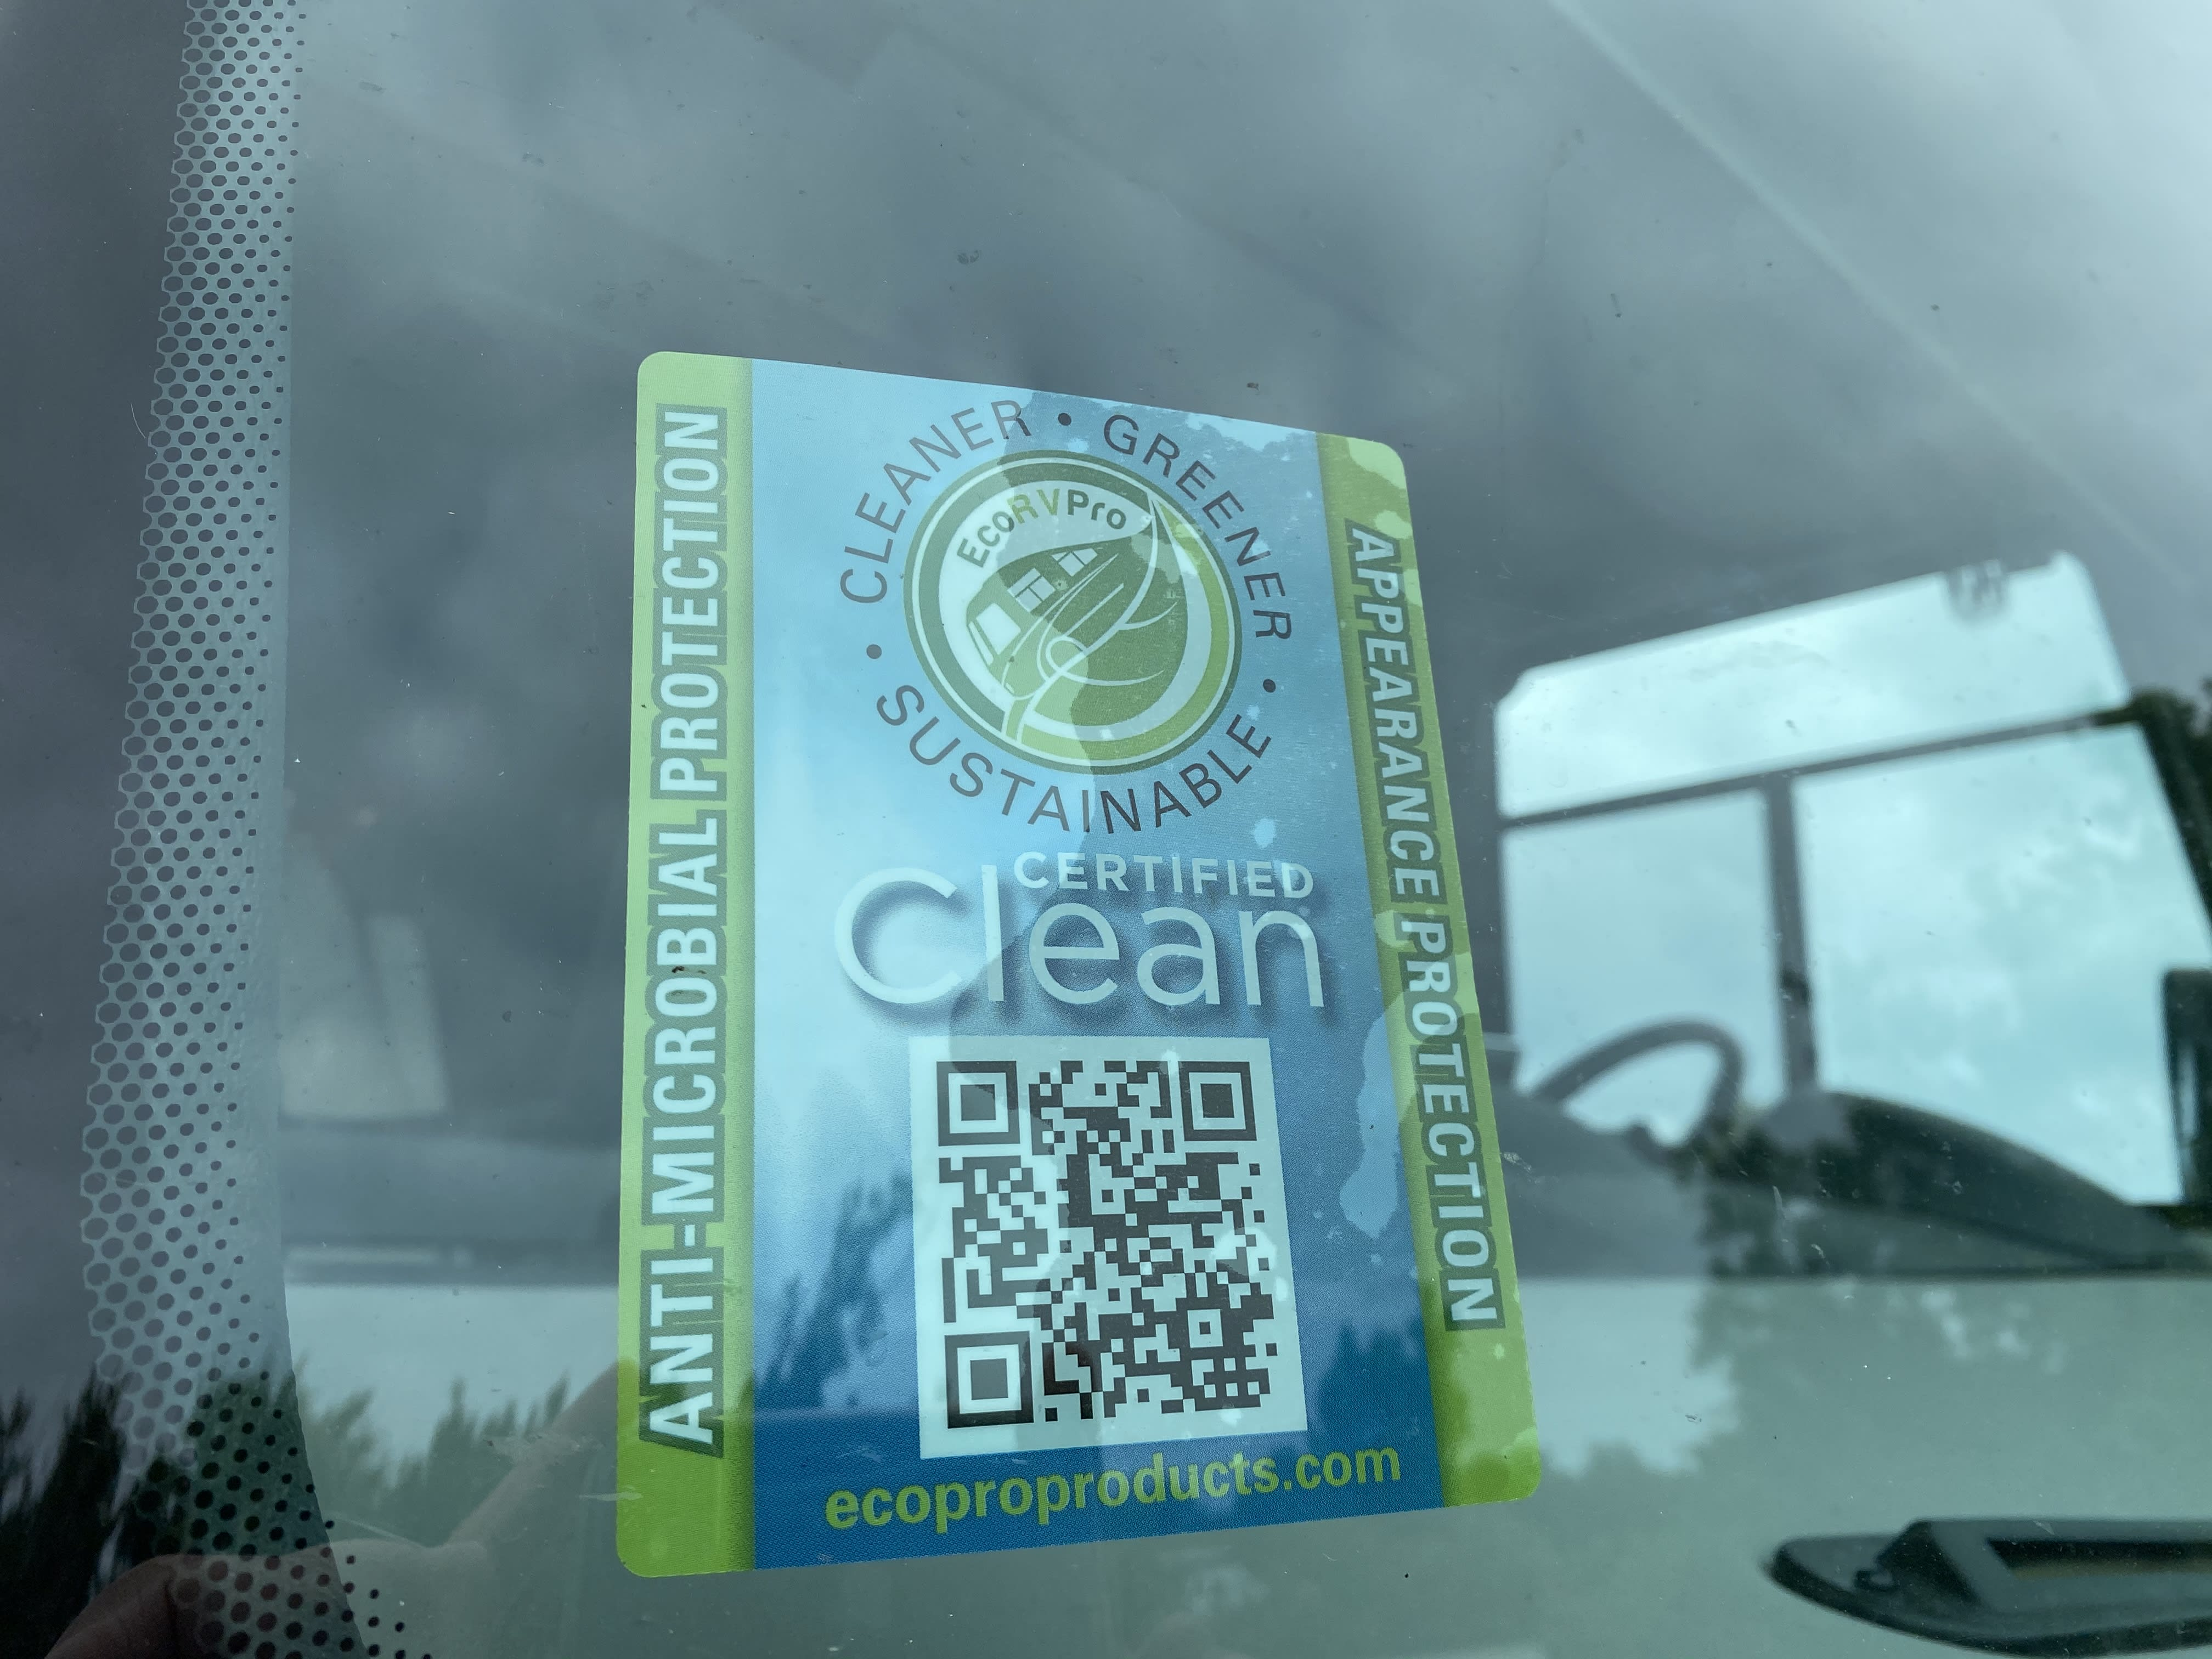 ECO RV Pro - Certified Clean, Anti-Microbial Protection. It is important protection during COVID-19. Coachmen Mirada 2021